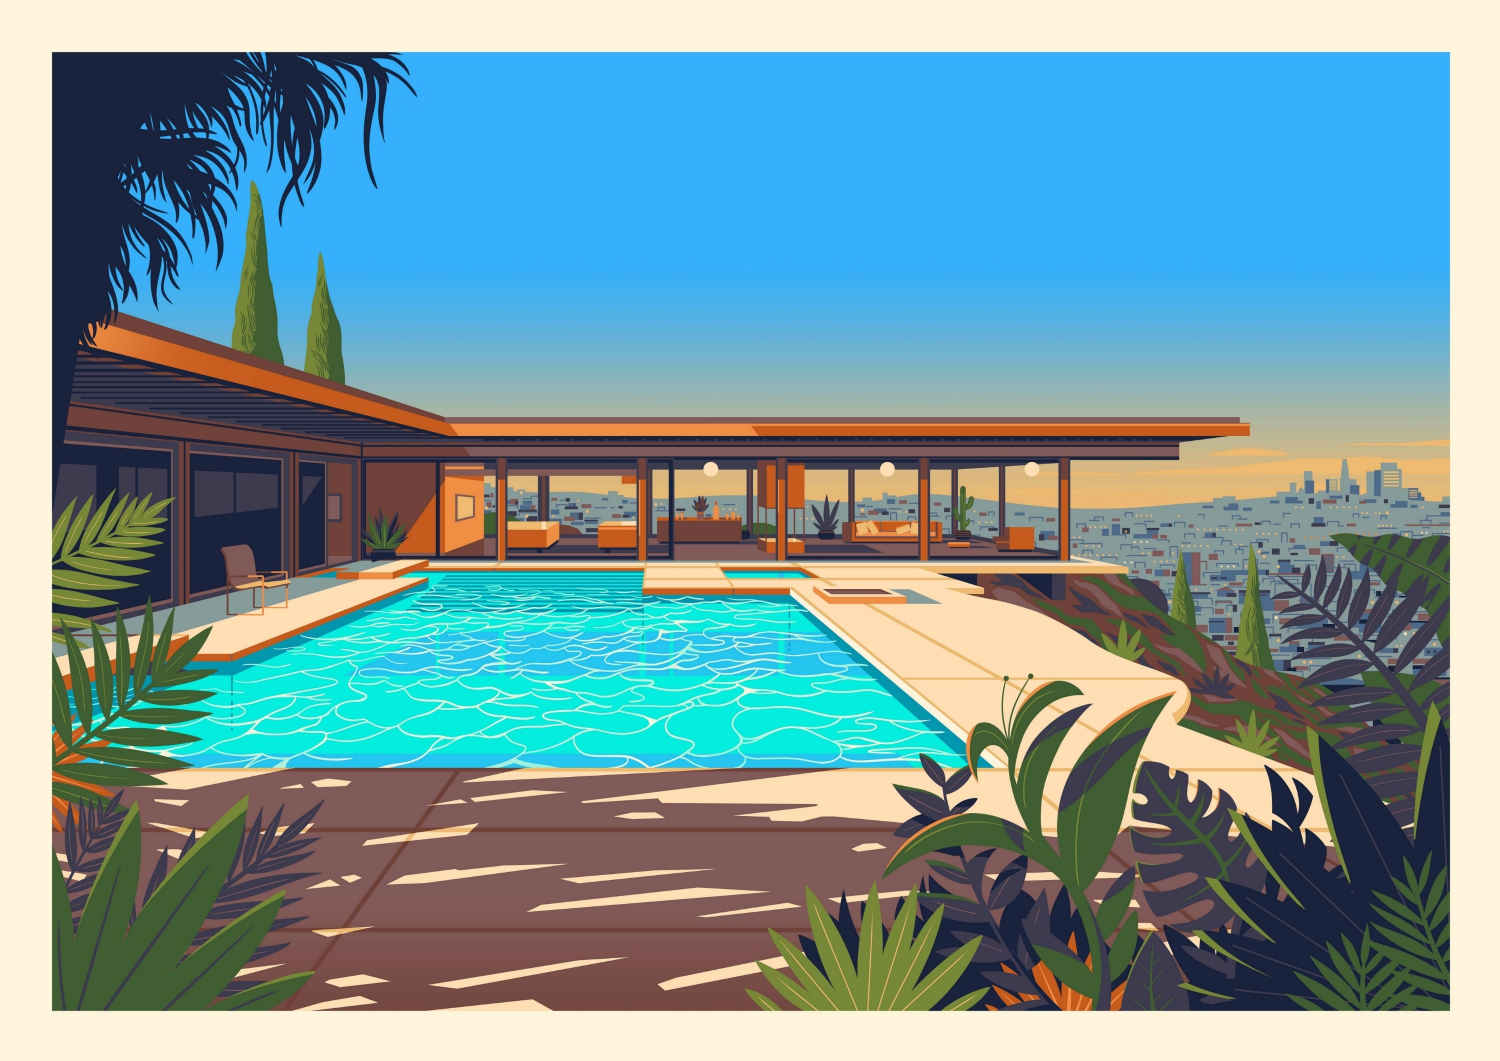 These Colorful Illustrations of L.A. Landmarks Celebrate the City's Architectural Gems